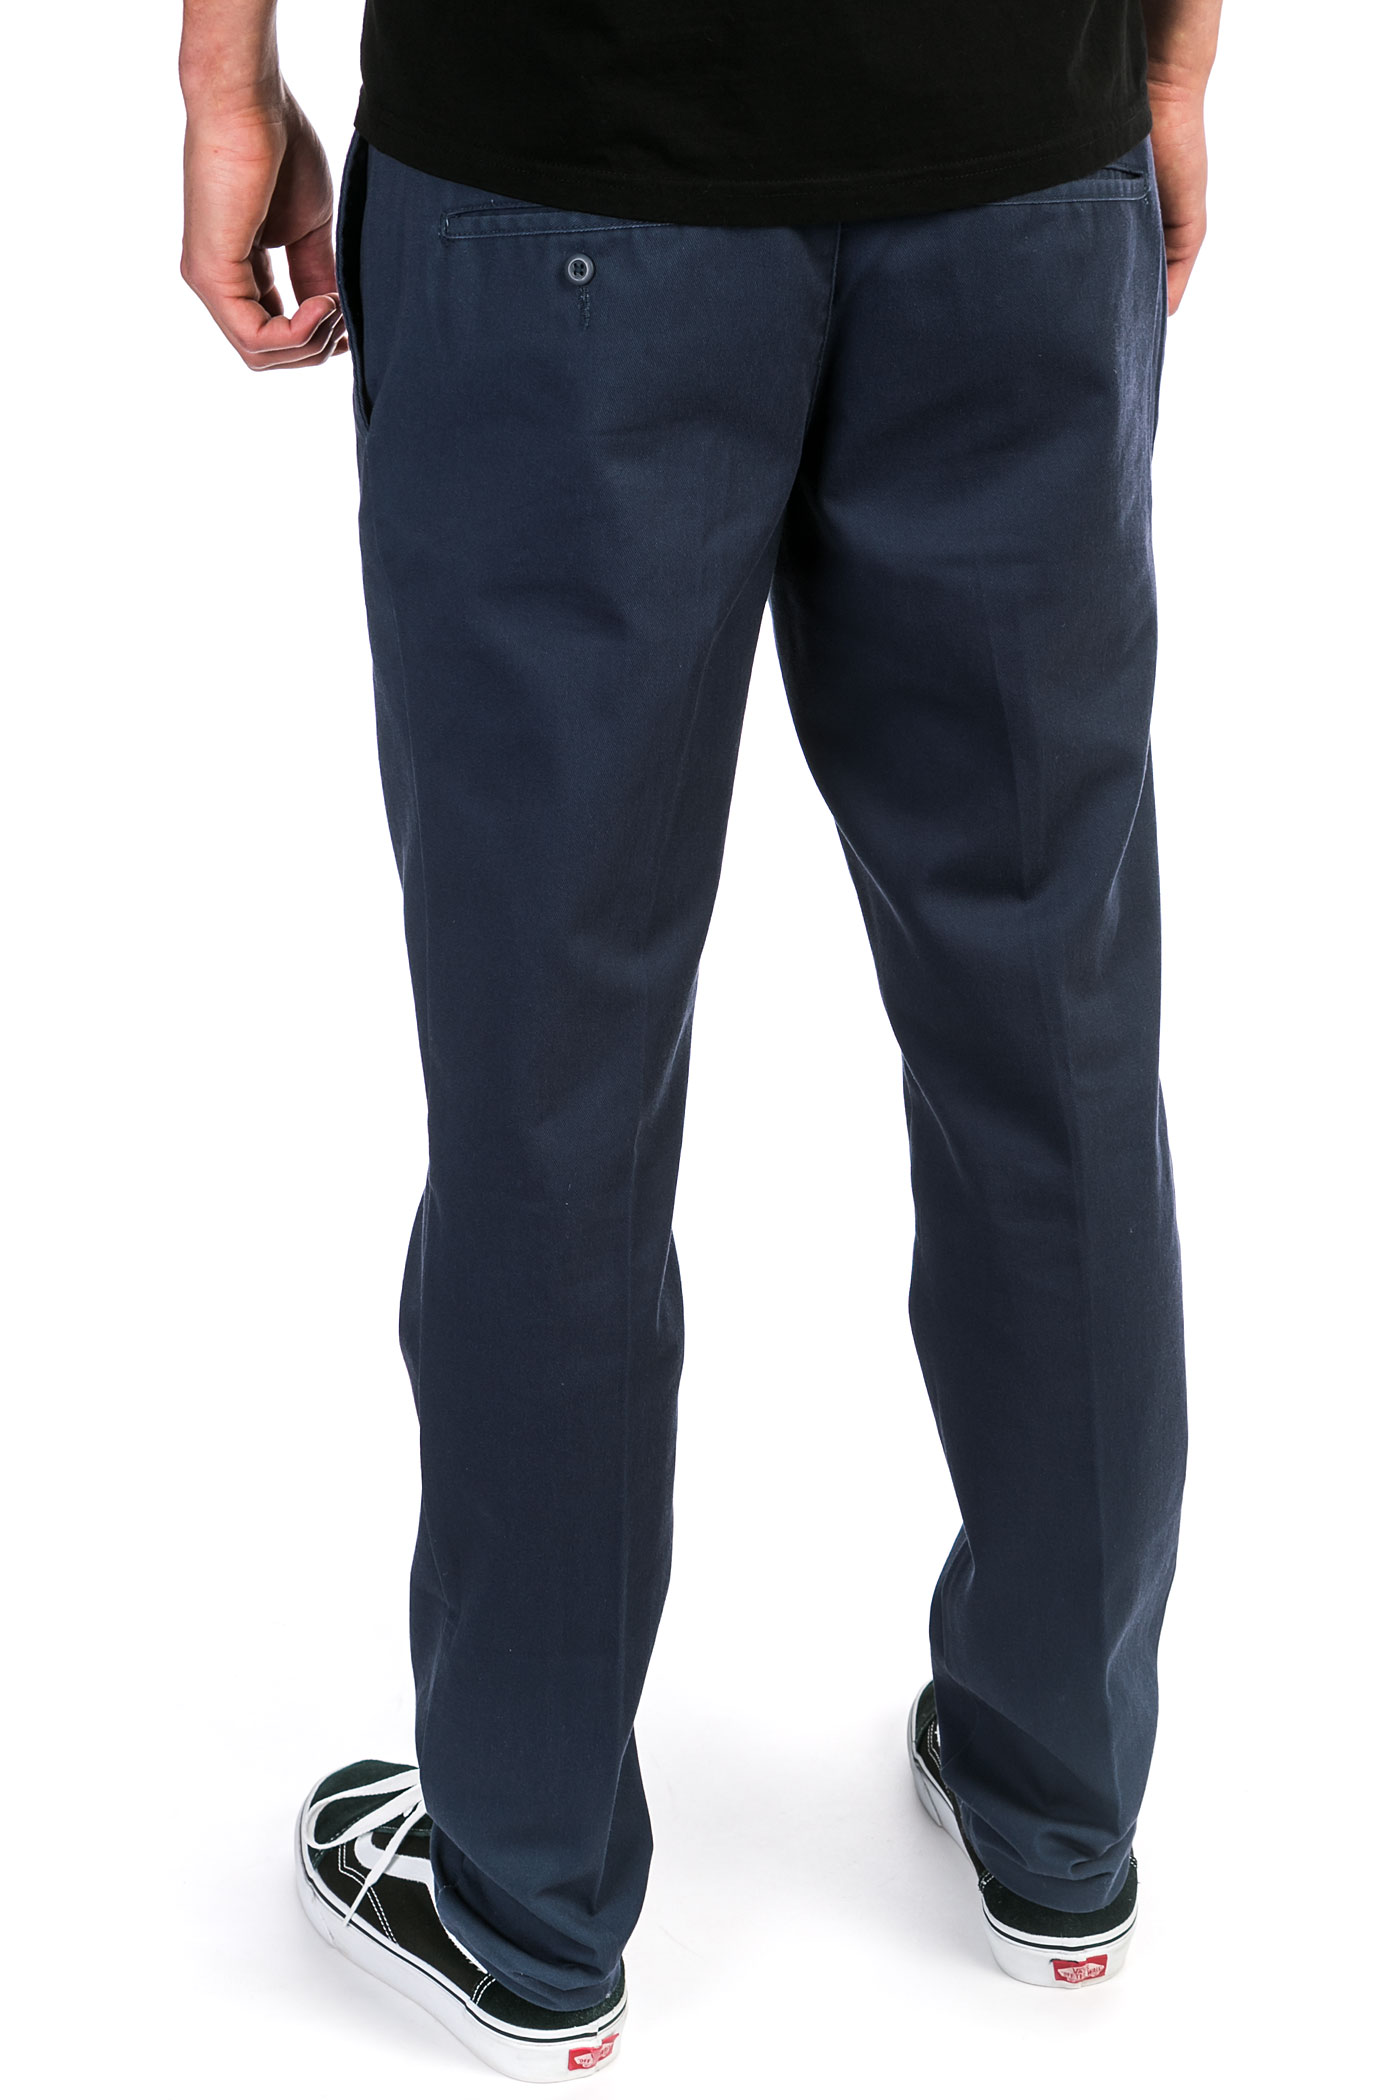 Shop Nautica mens dress pants online today. Hello! It appears the browser you are using is Internet Explorer 7 (IE7). As of Sept 27, this website no longer supports IE7. For optimal Slim Fit Marina Pants $ $ Take 50% off, $ discount shown in cart +1 Dress.